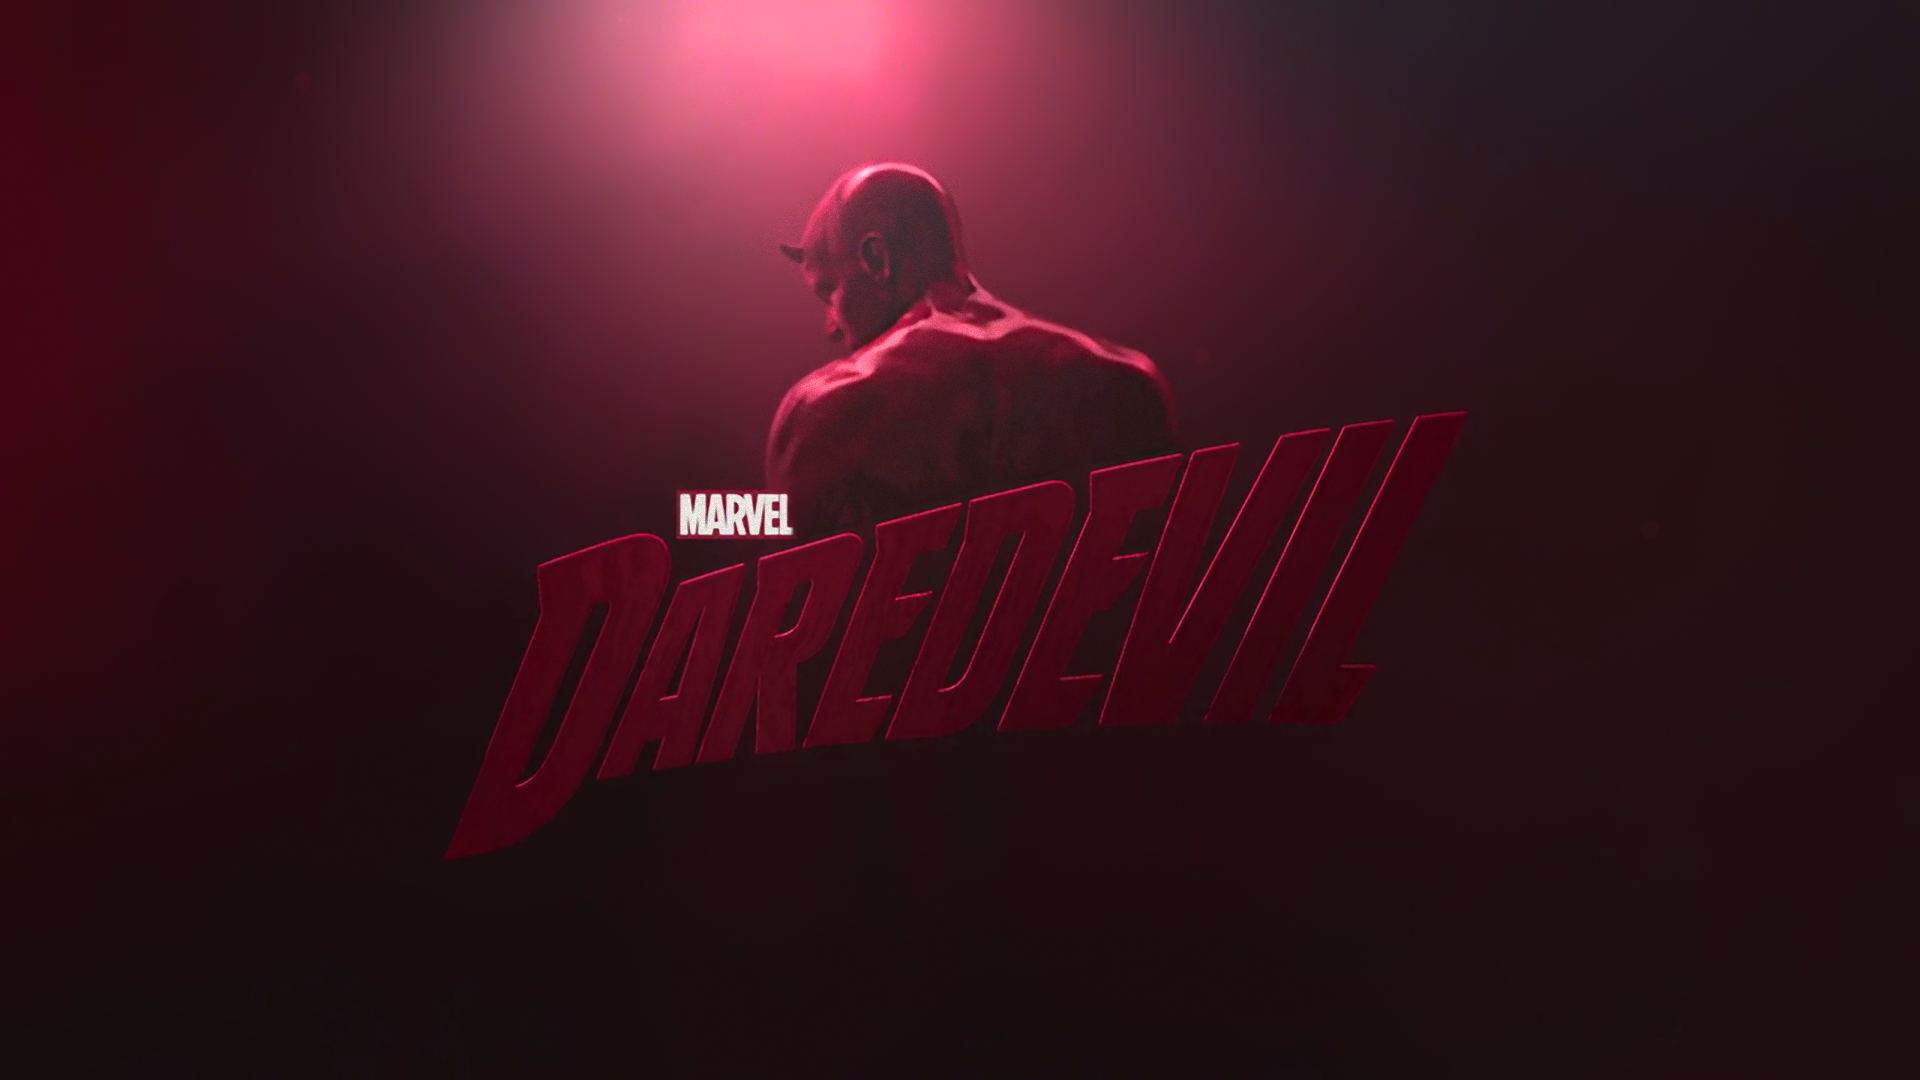 Desktop Daredevil Hd Wallpapers Papiers Peints Univers Marvel Frank Miller